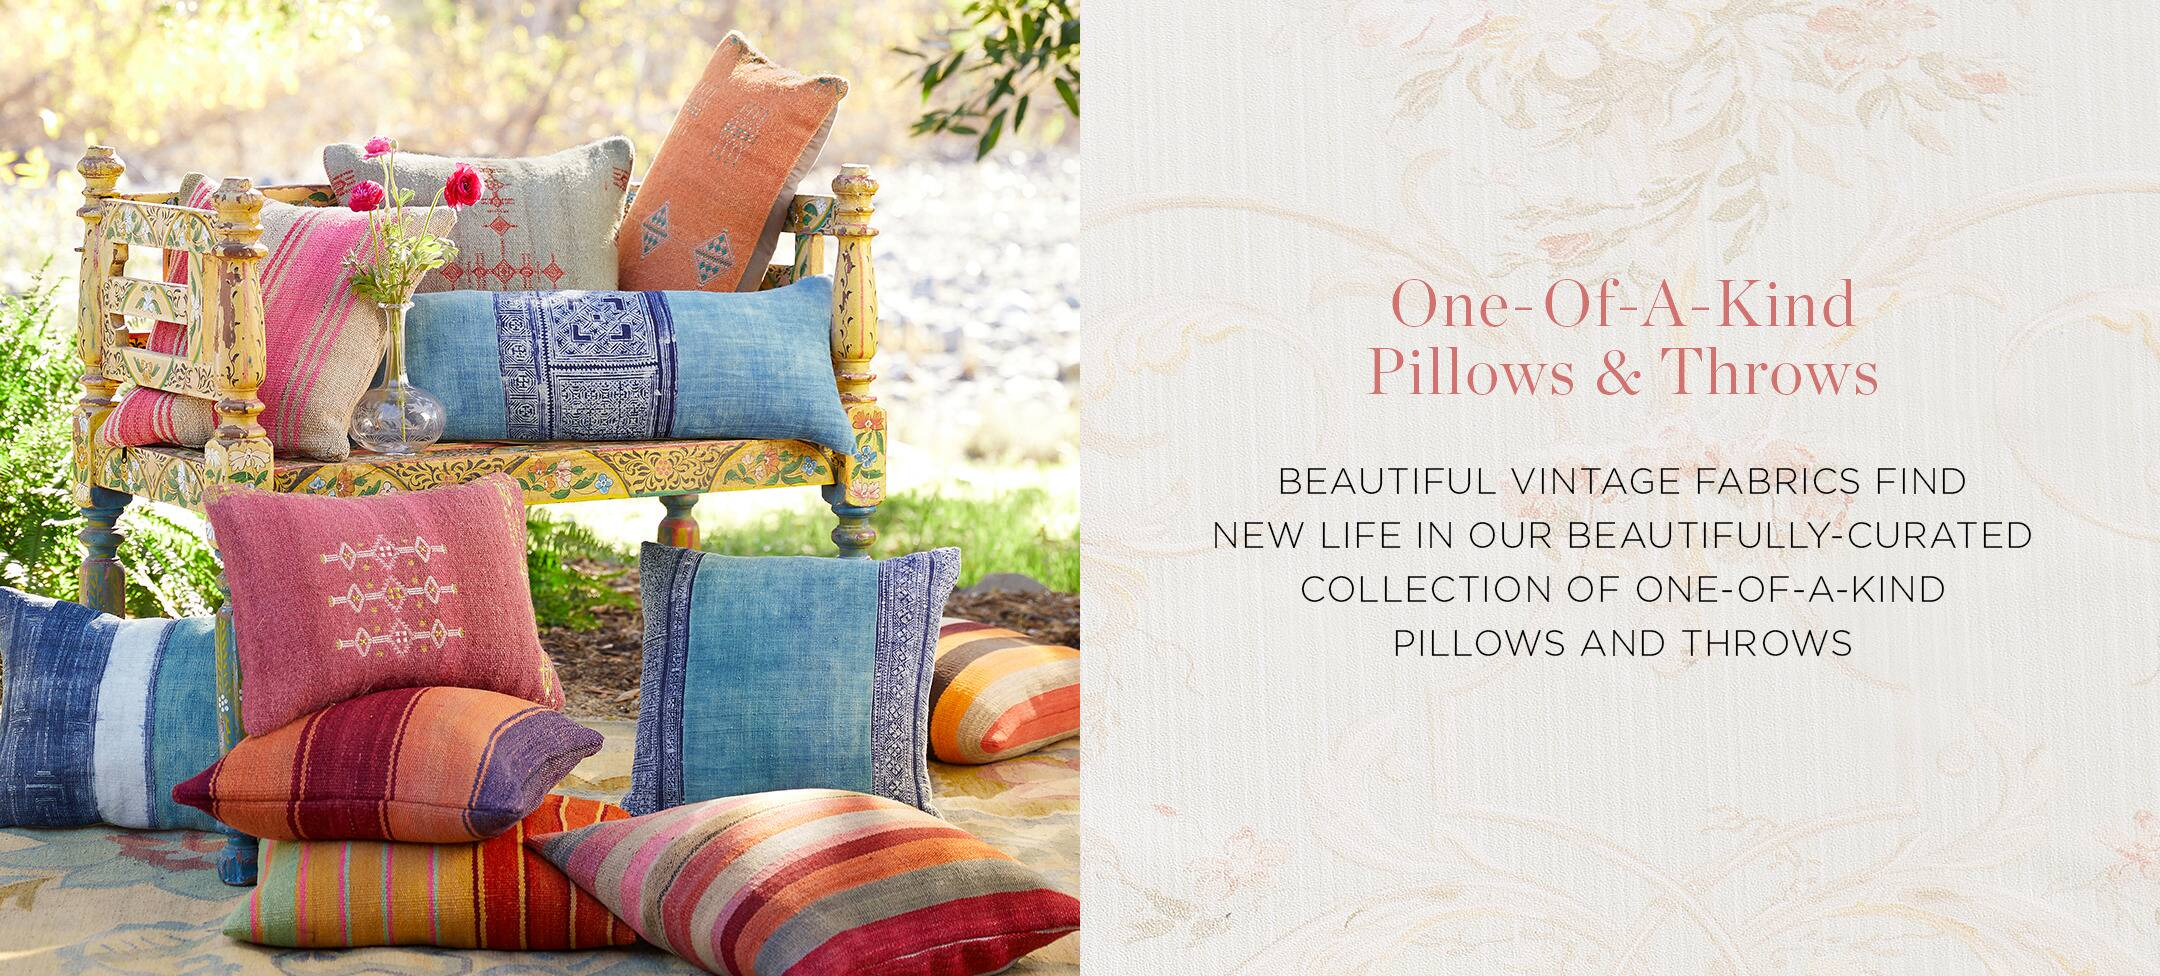 One-of-a-Kind Pillows and Throws